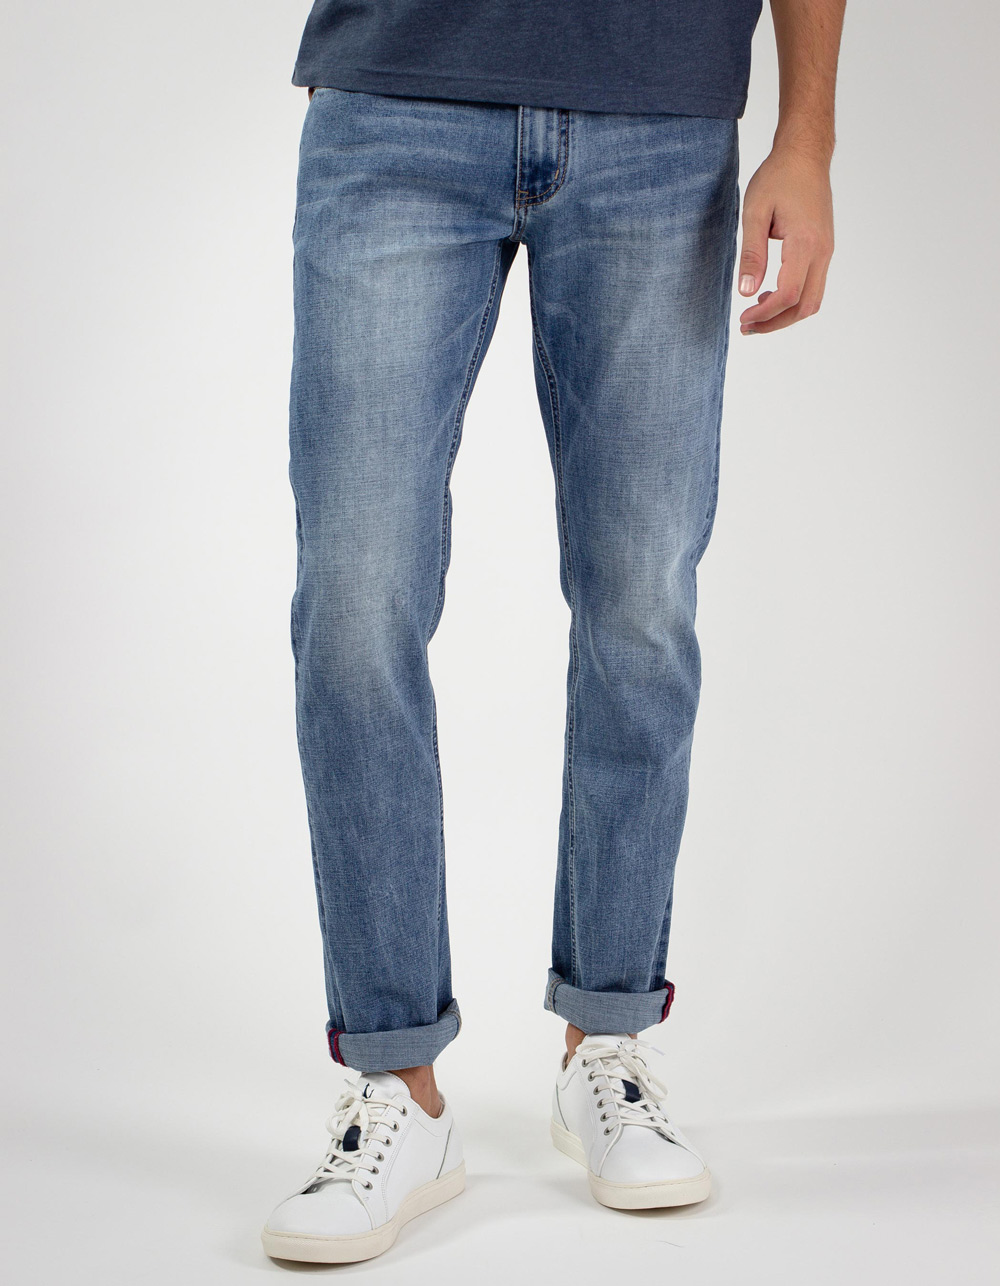 Medium light blue jeans